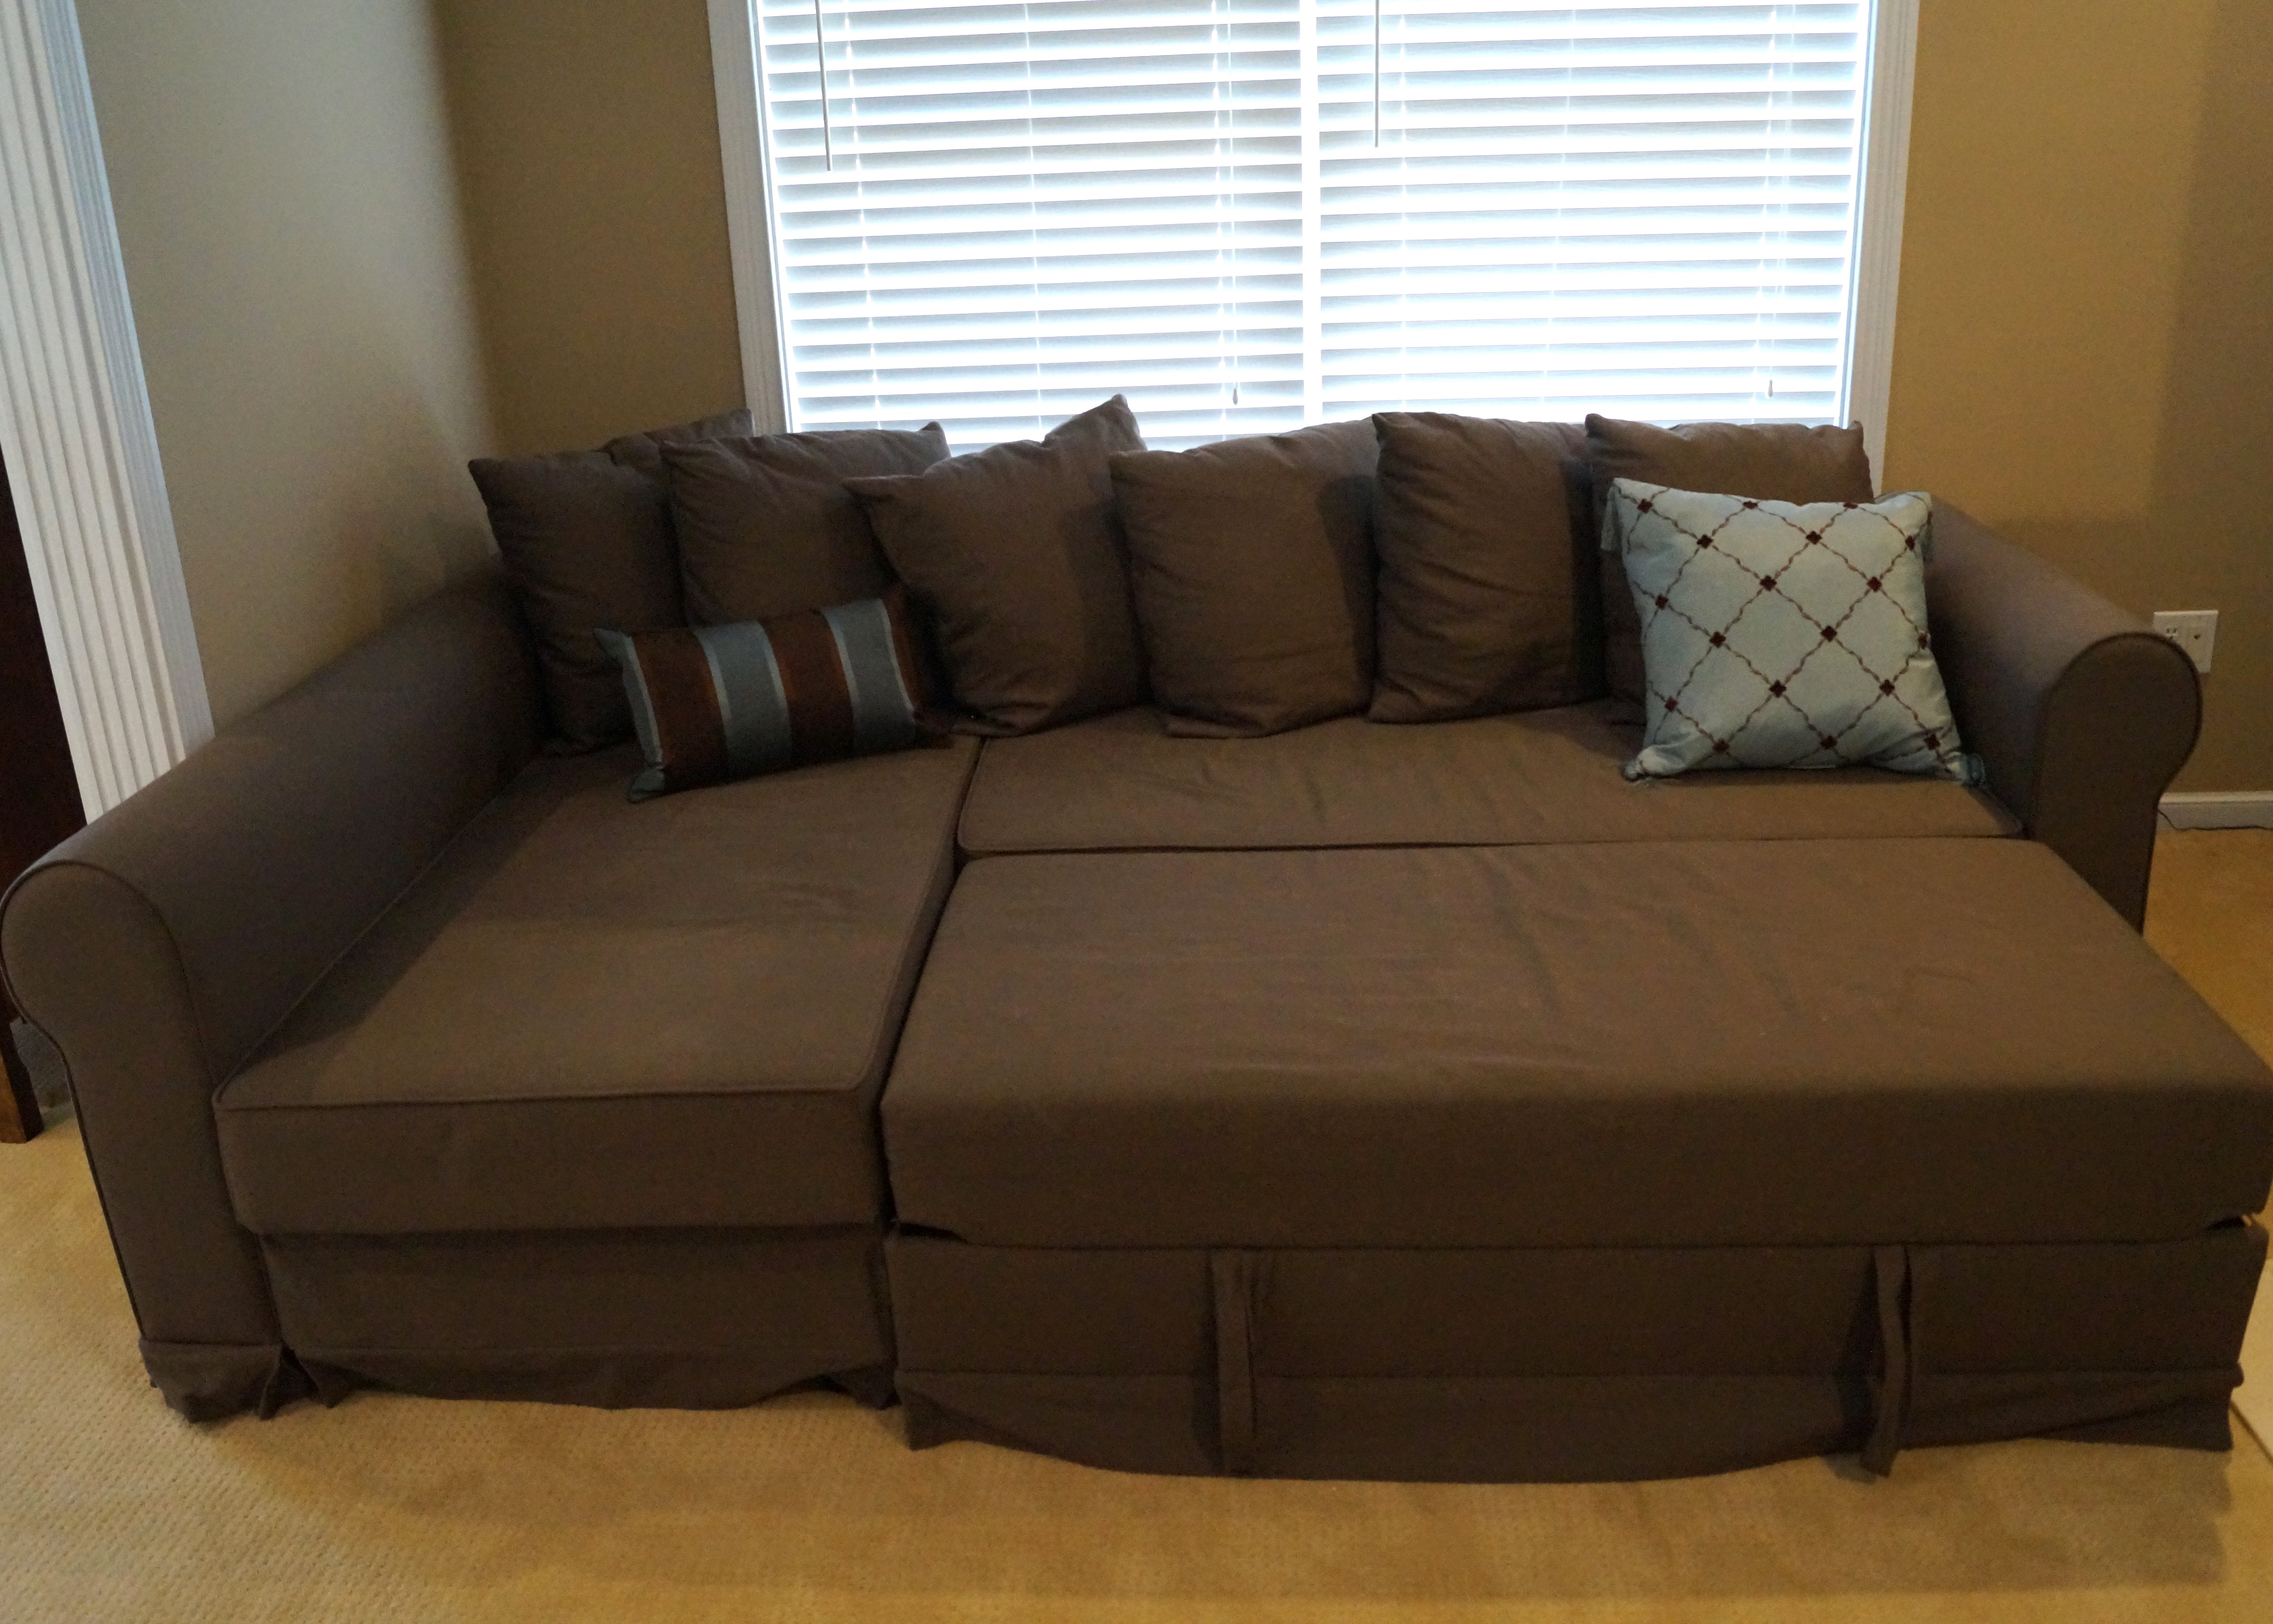 IKEA Moheda Corner Storage Sofa Bed With Pull Out Ottoman ...